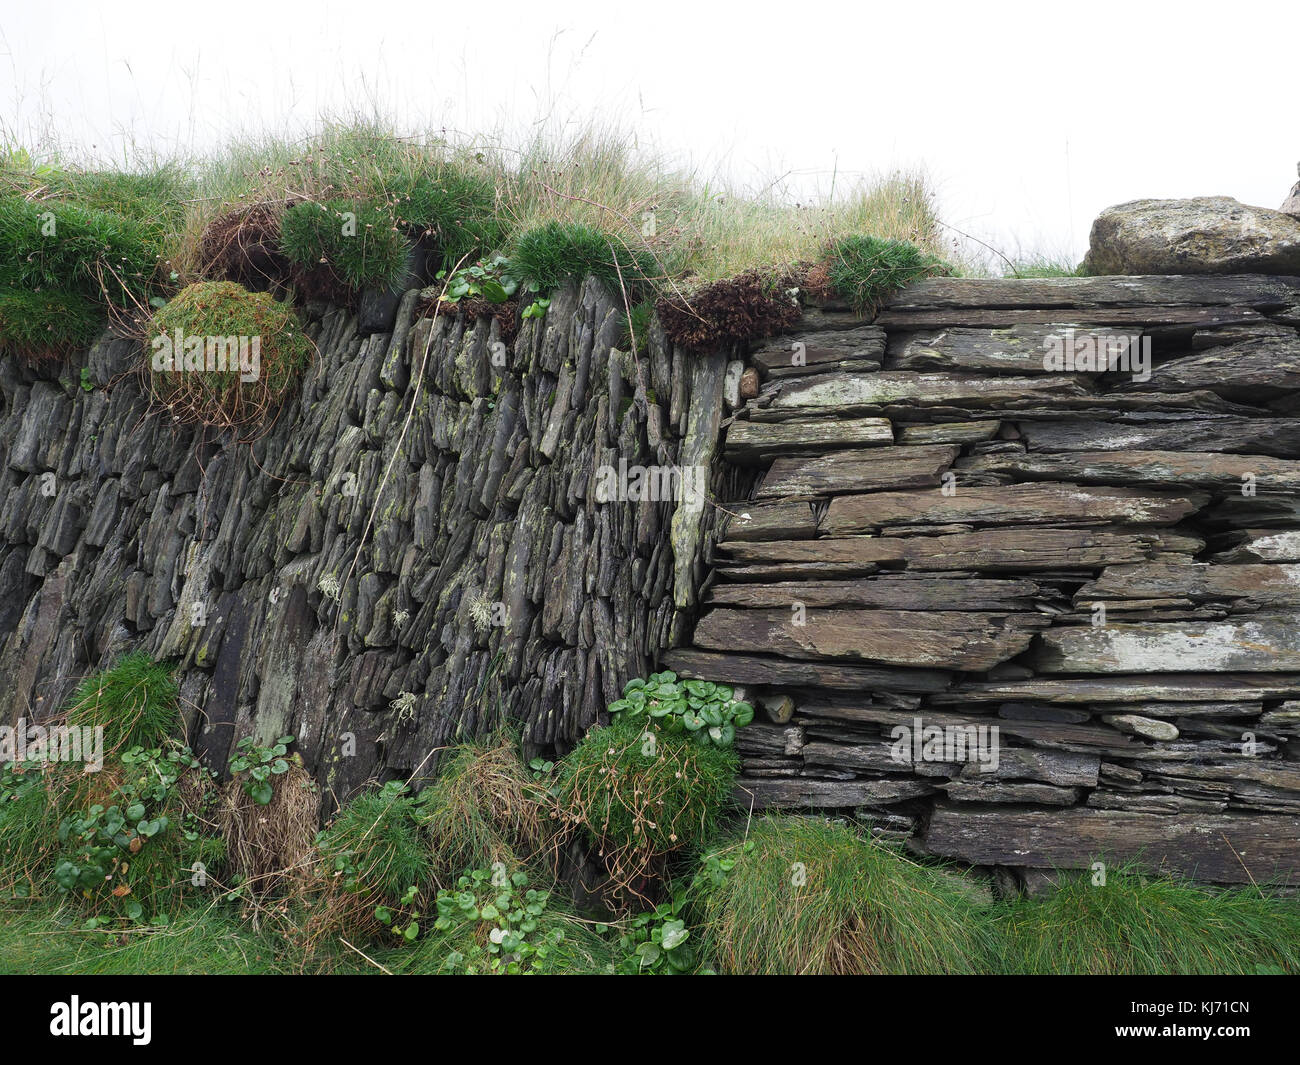 Rugged and beautiful Pembrokeshire stone walls along the coast path in the Pembrokeshire National Park, Wales UK - Stock Image